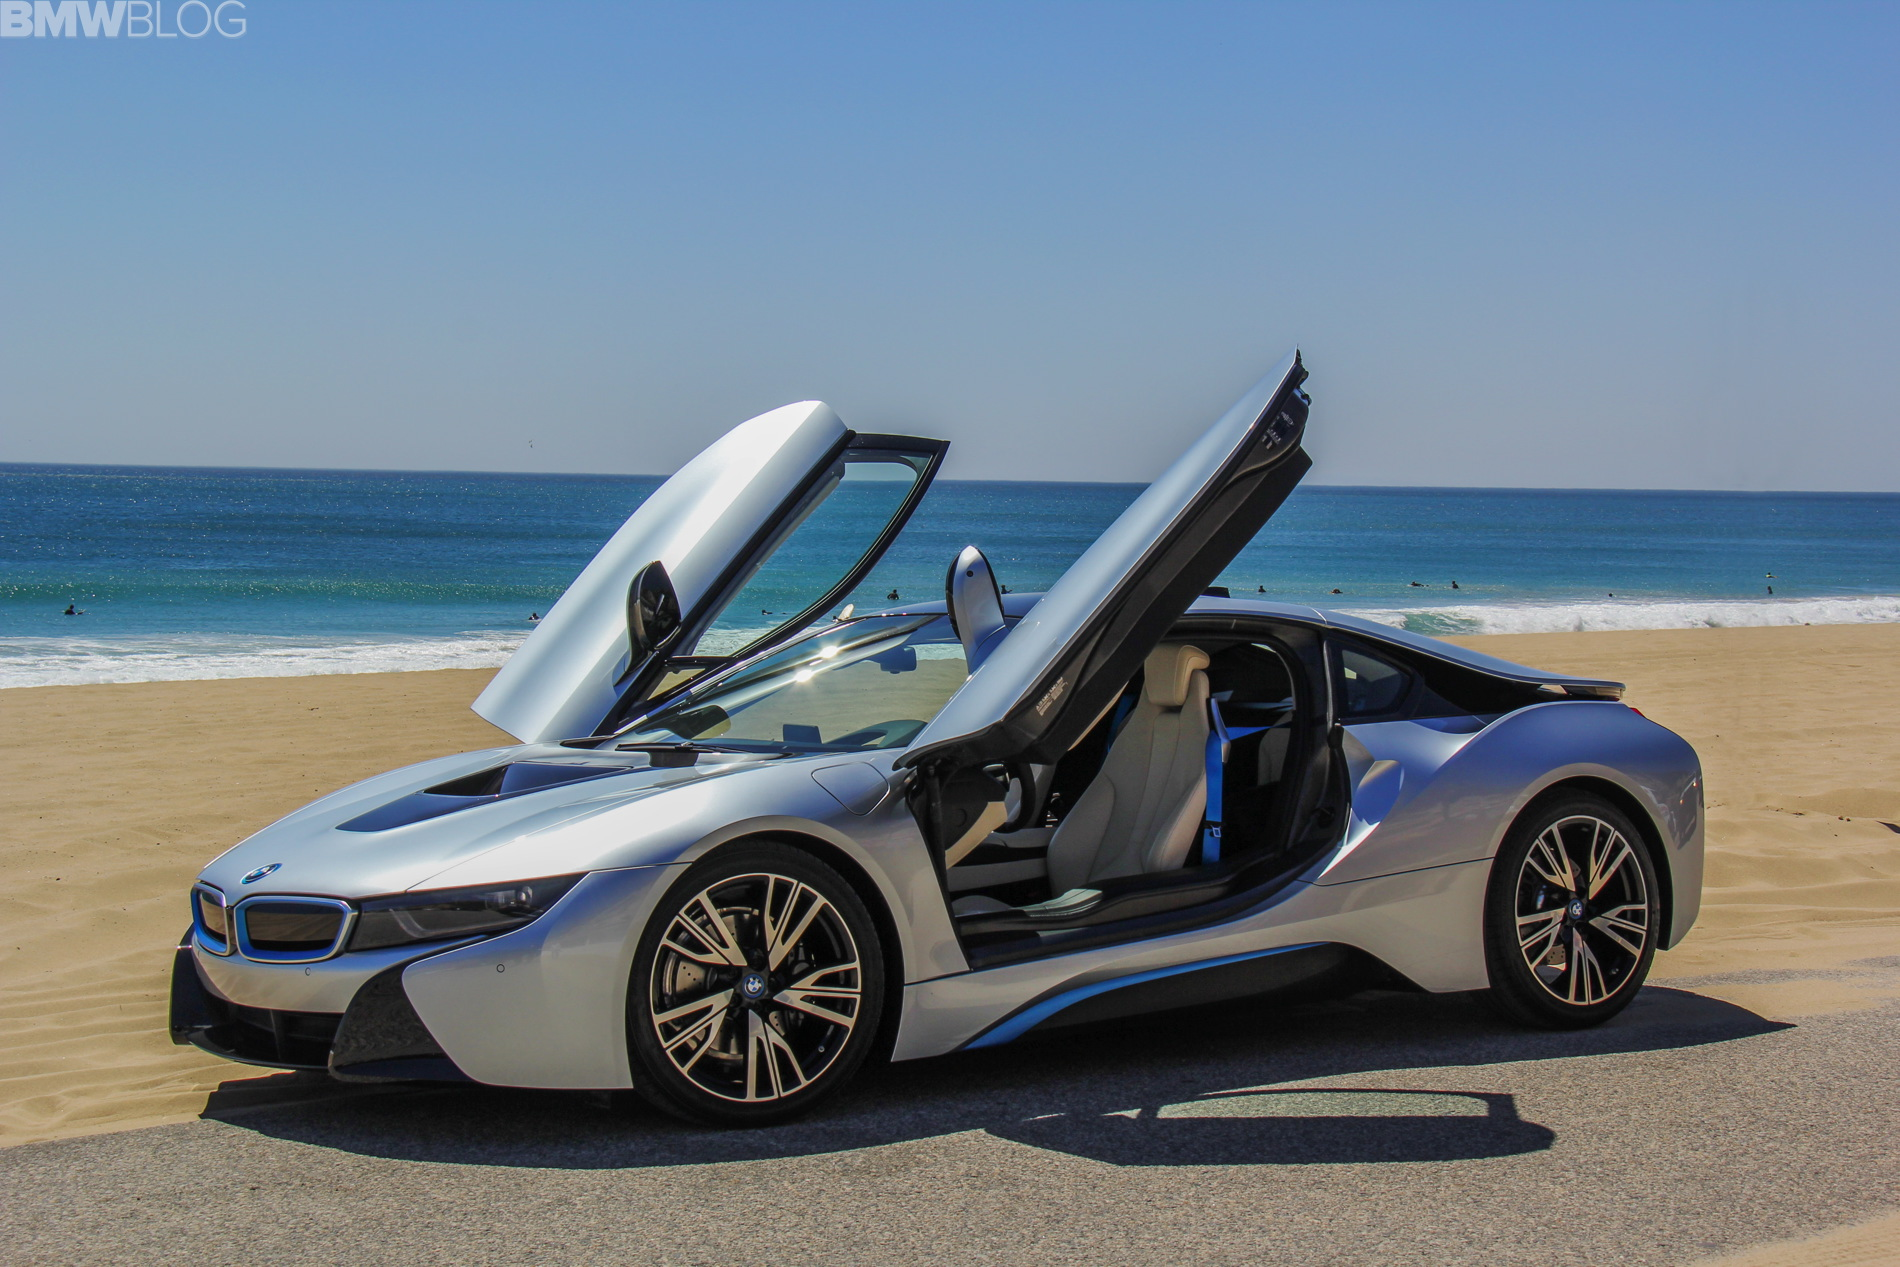 Is The BMW i8 Worth The $100,000 Price Markup?